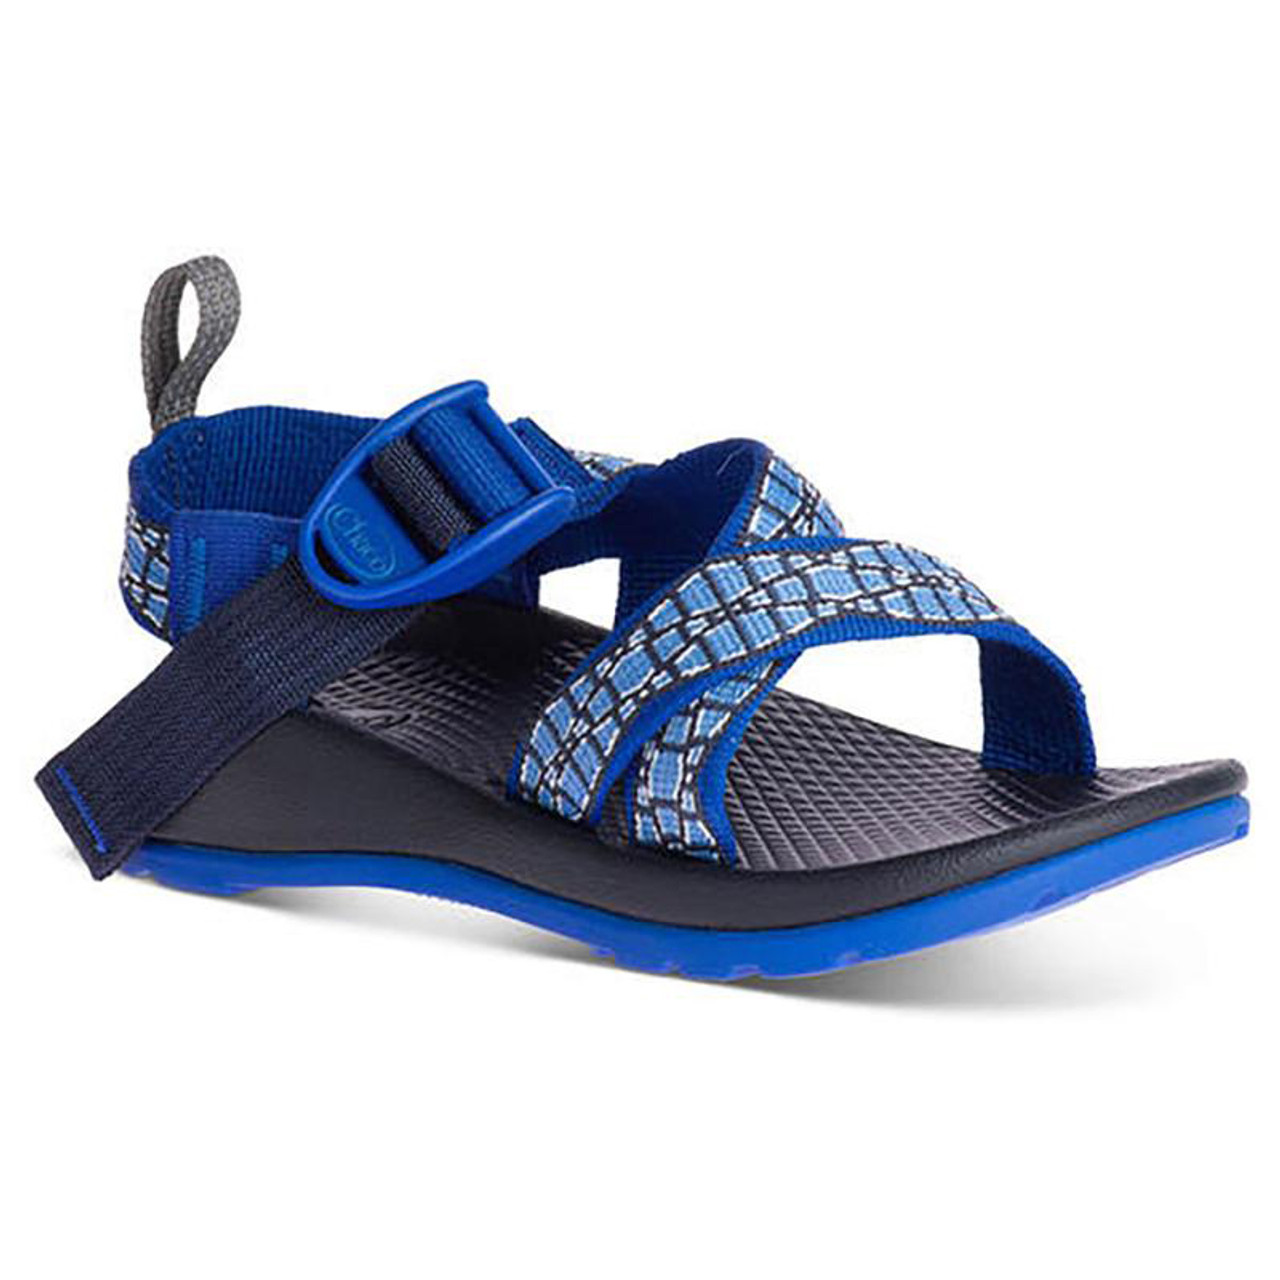 a25fe5e943d6 Chaco Kid s Sandal - Z 1 Kids - Swell Eclipse - Surf and Dirt